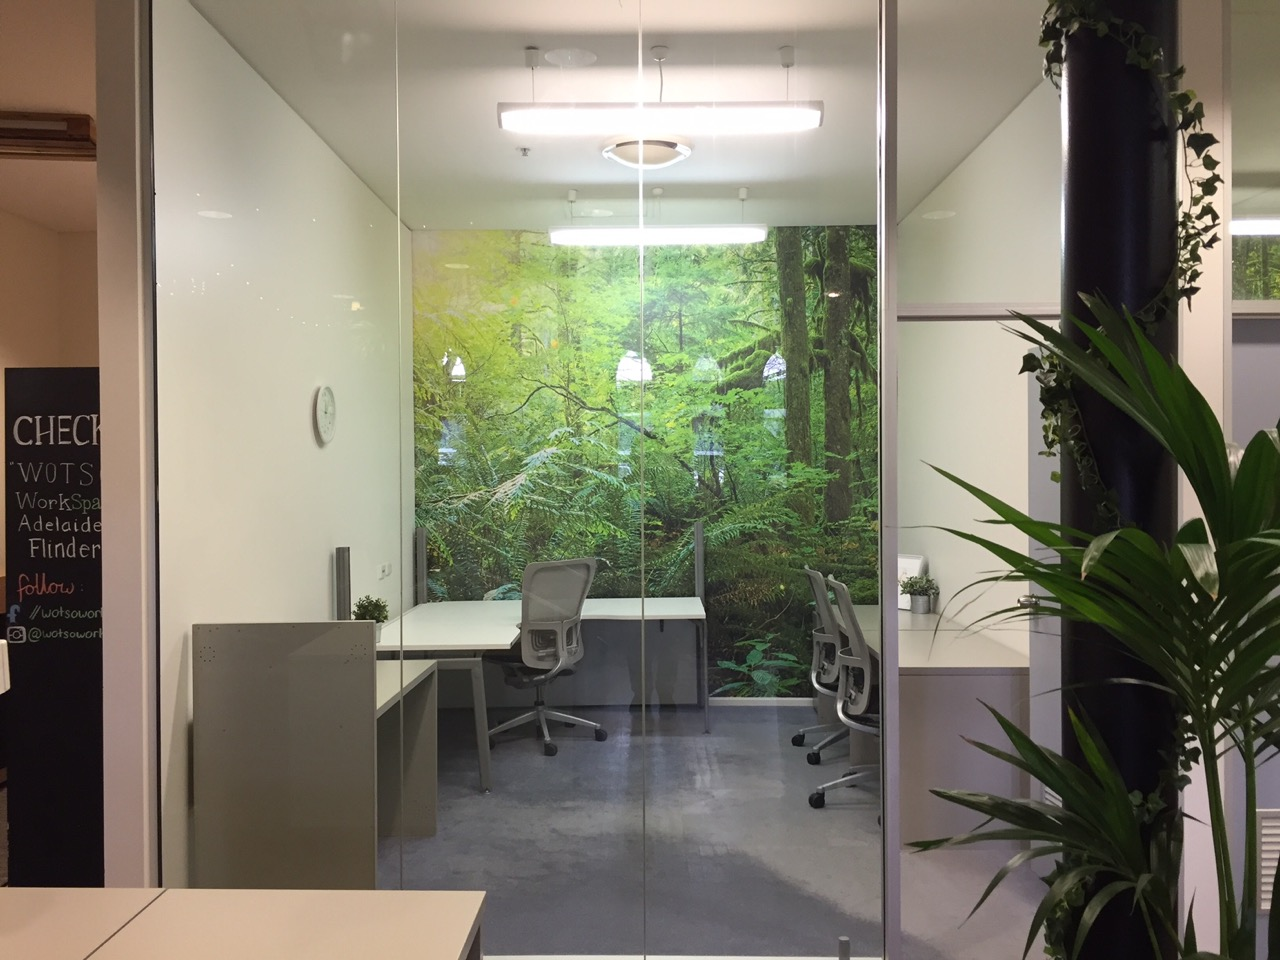 WOTSO WorkSpace Adelaide, Adelaide